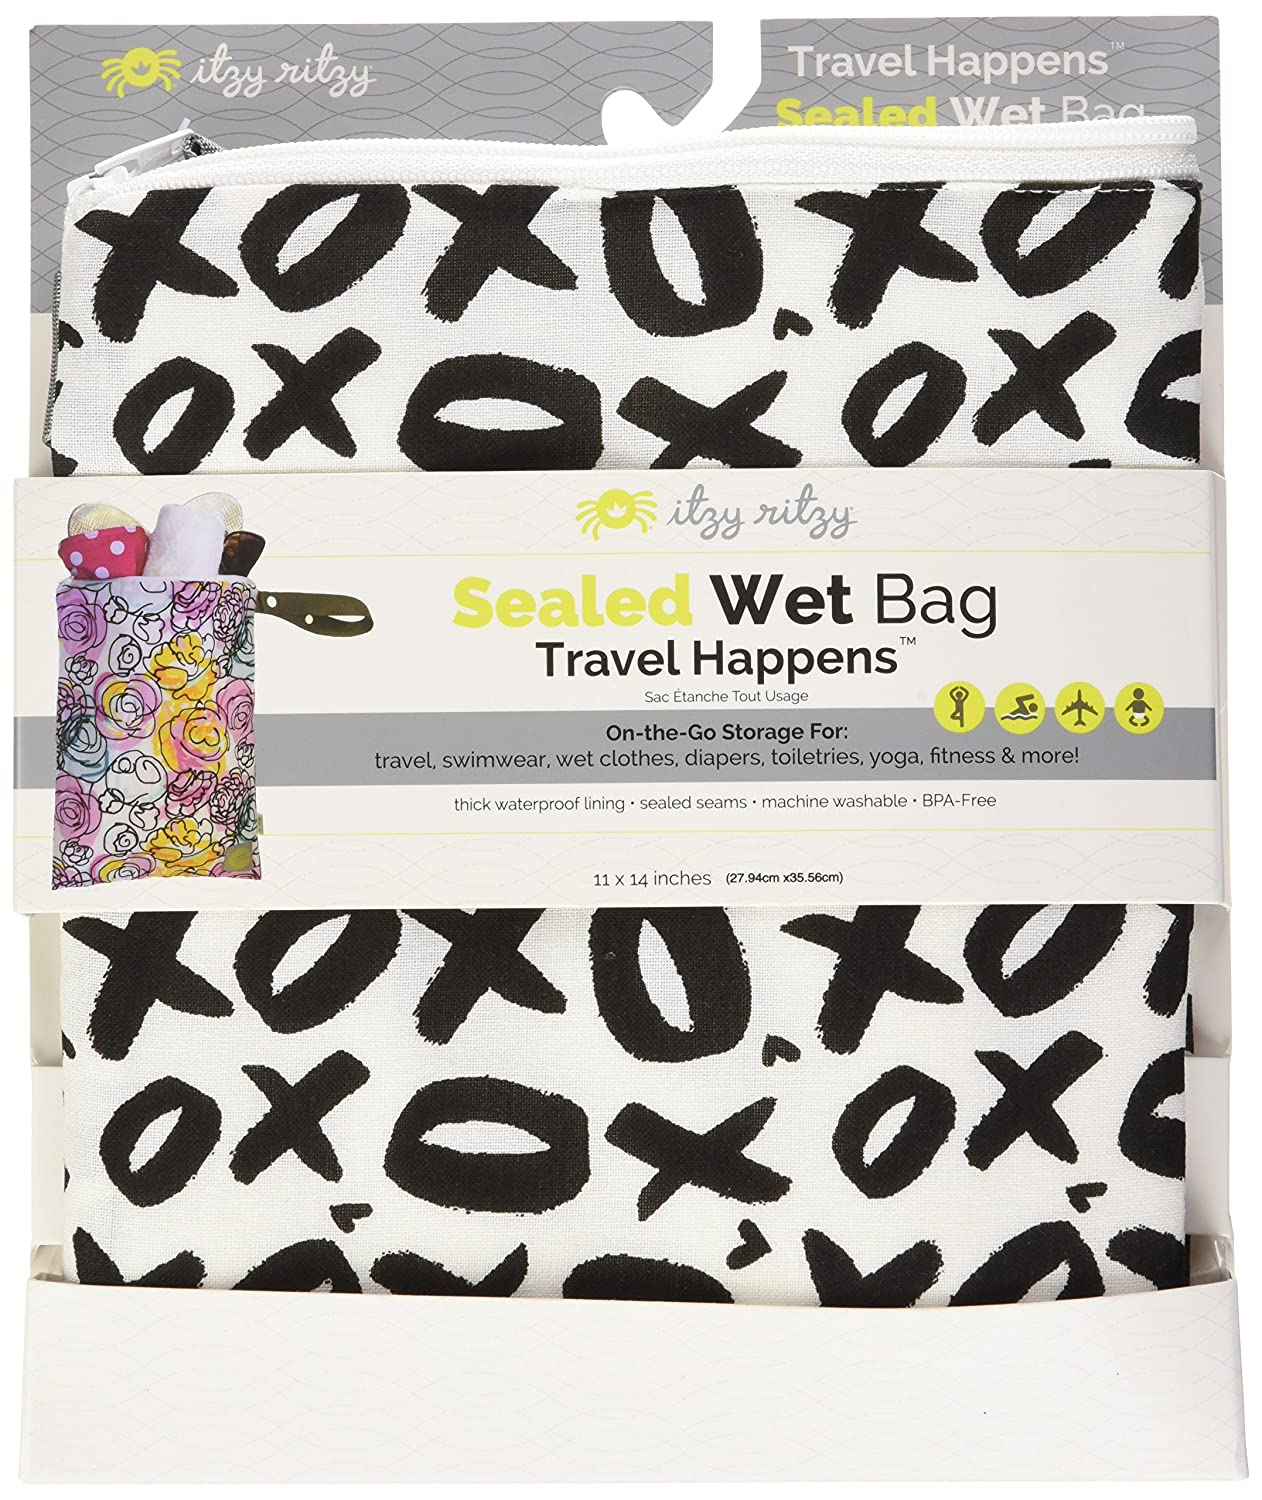 Raining Cats and Dogs Itzy Ritzy IR-WBMH8304 Travel Happens Medium Sealed Wet Bag with Handle